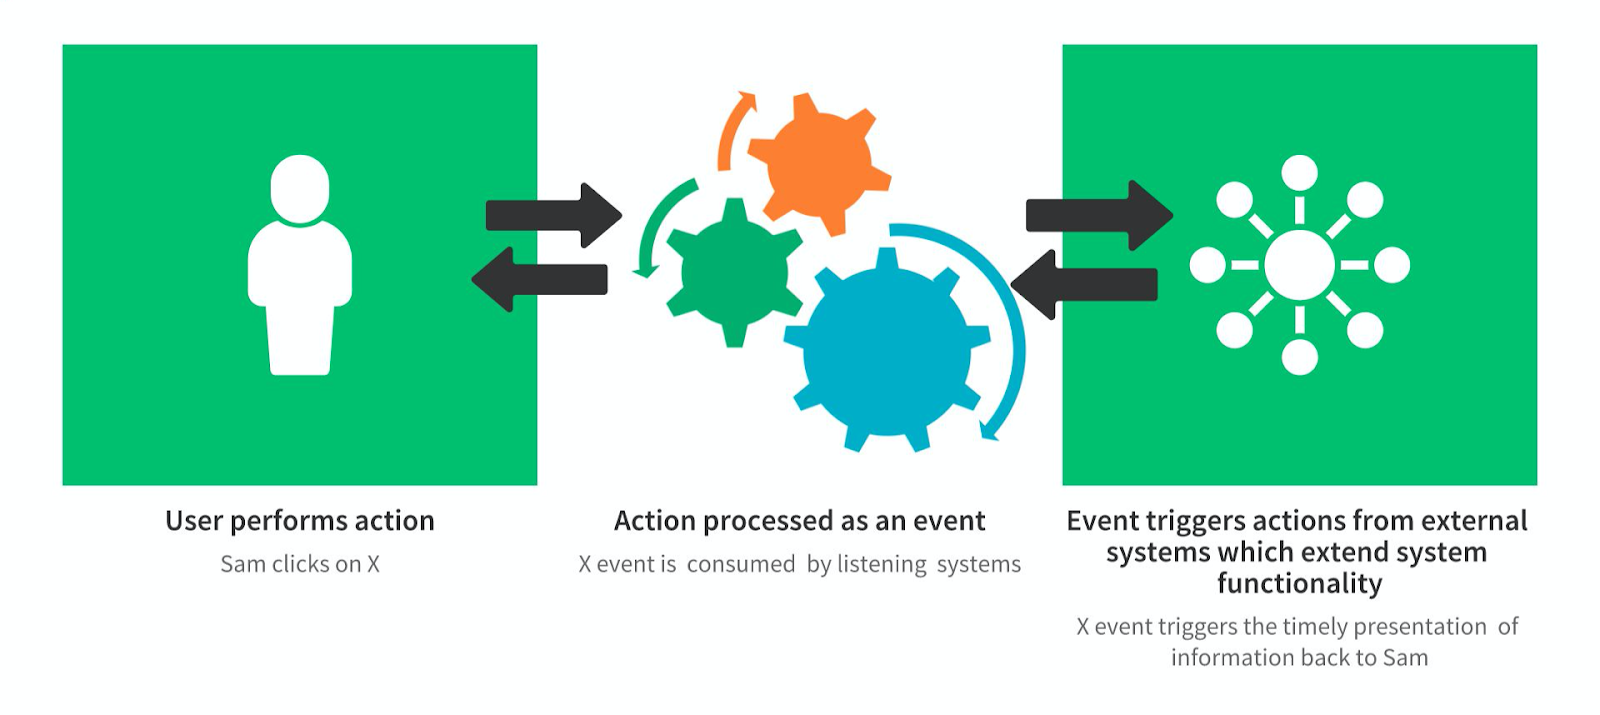 Event-Driven Architecture (EDA) helps promote event-driven user communication